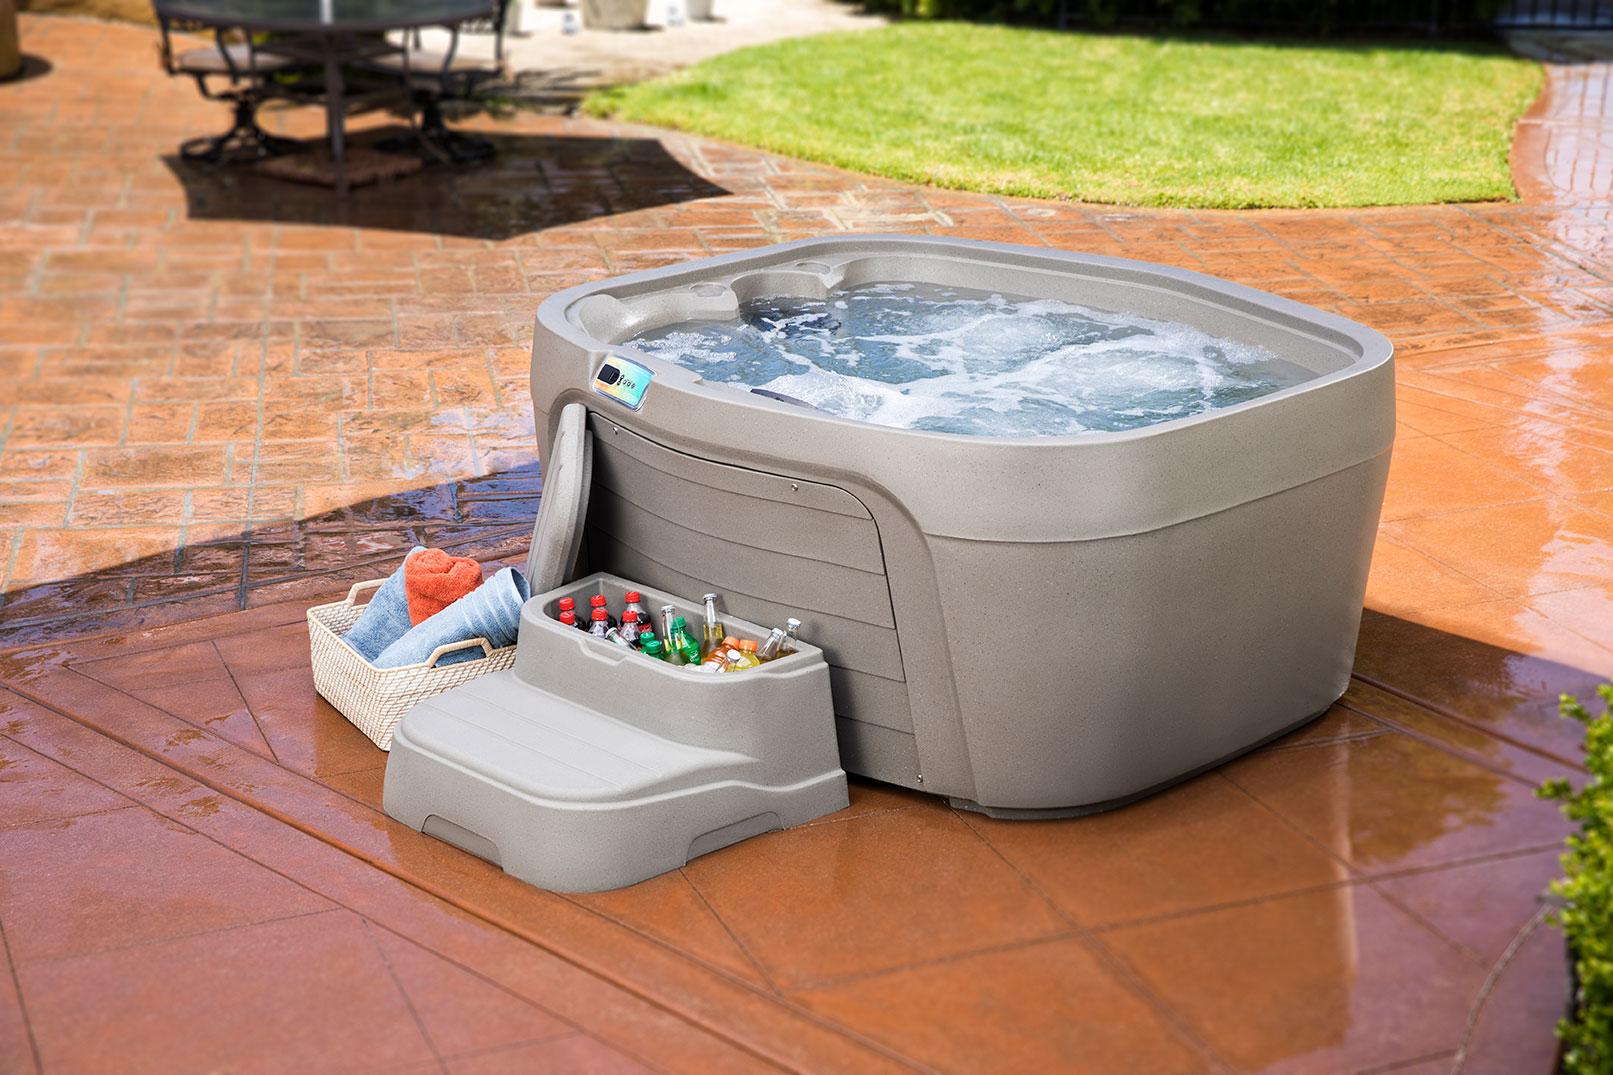 The 4-person Drift is the perfect backyard addition. Add the Cool Step to store drinks, towels, or water chemicals!